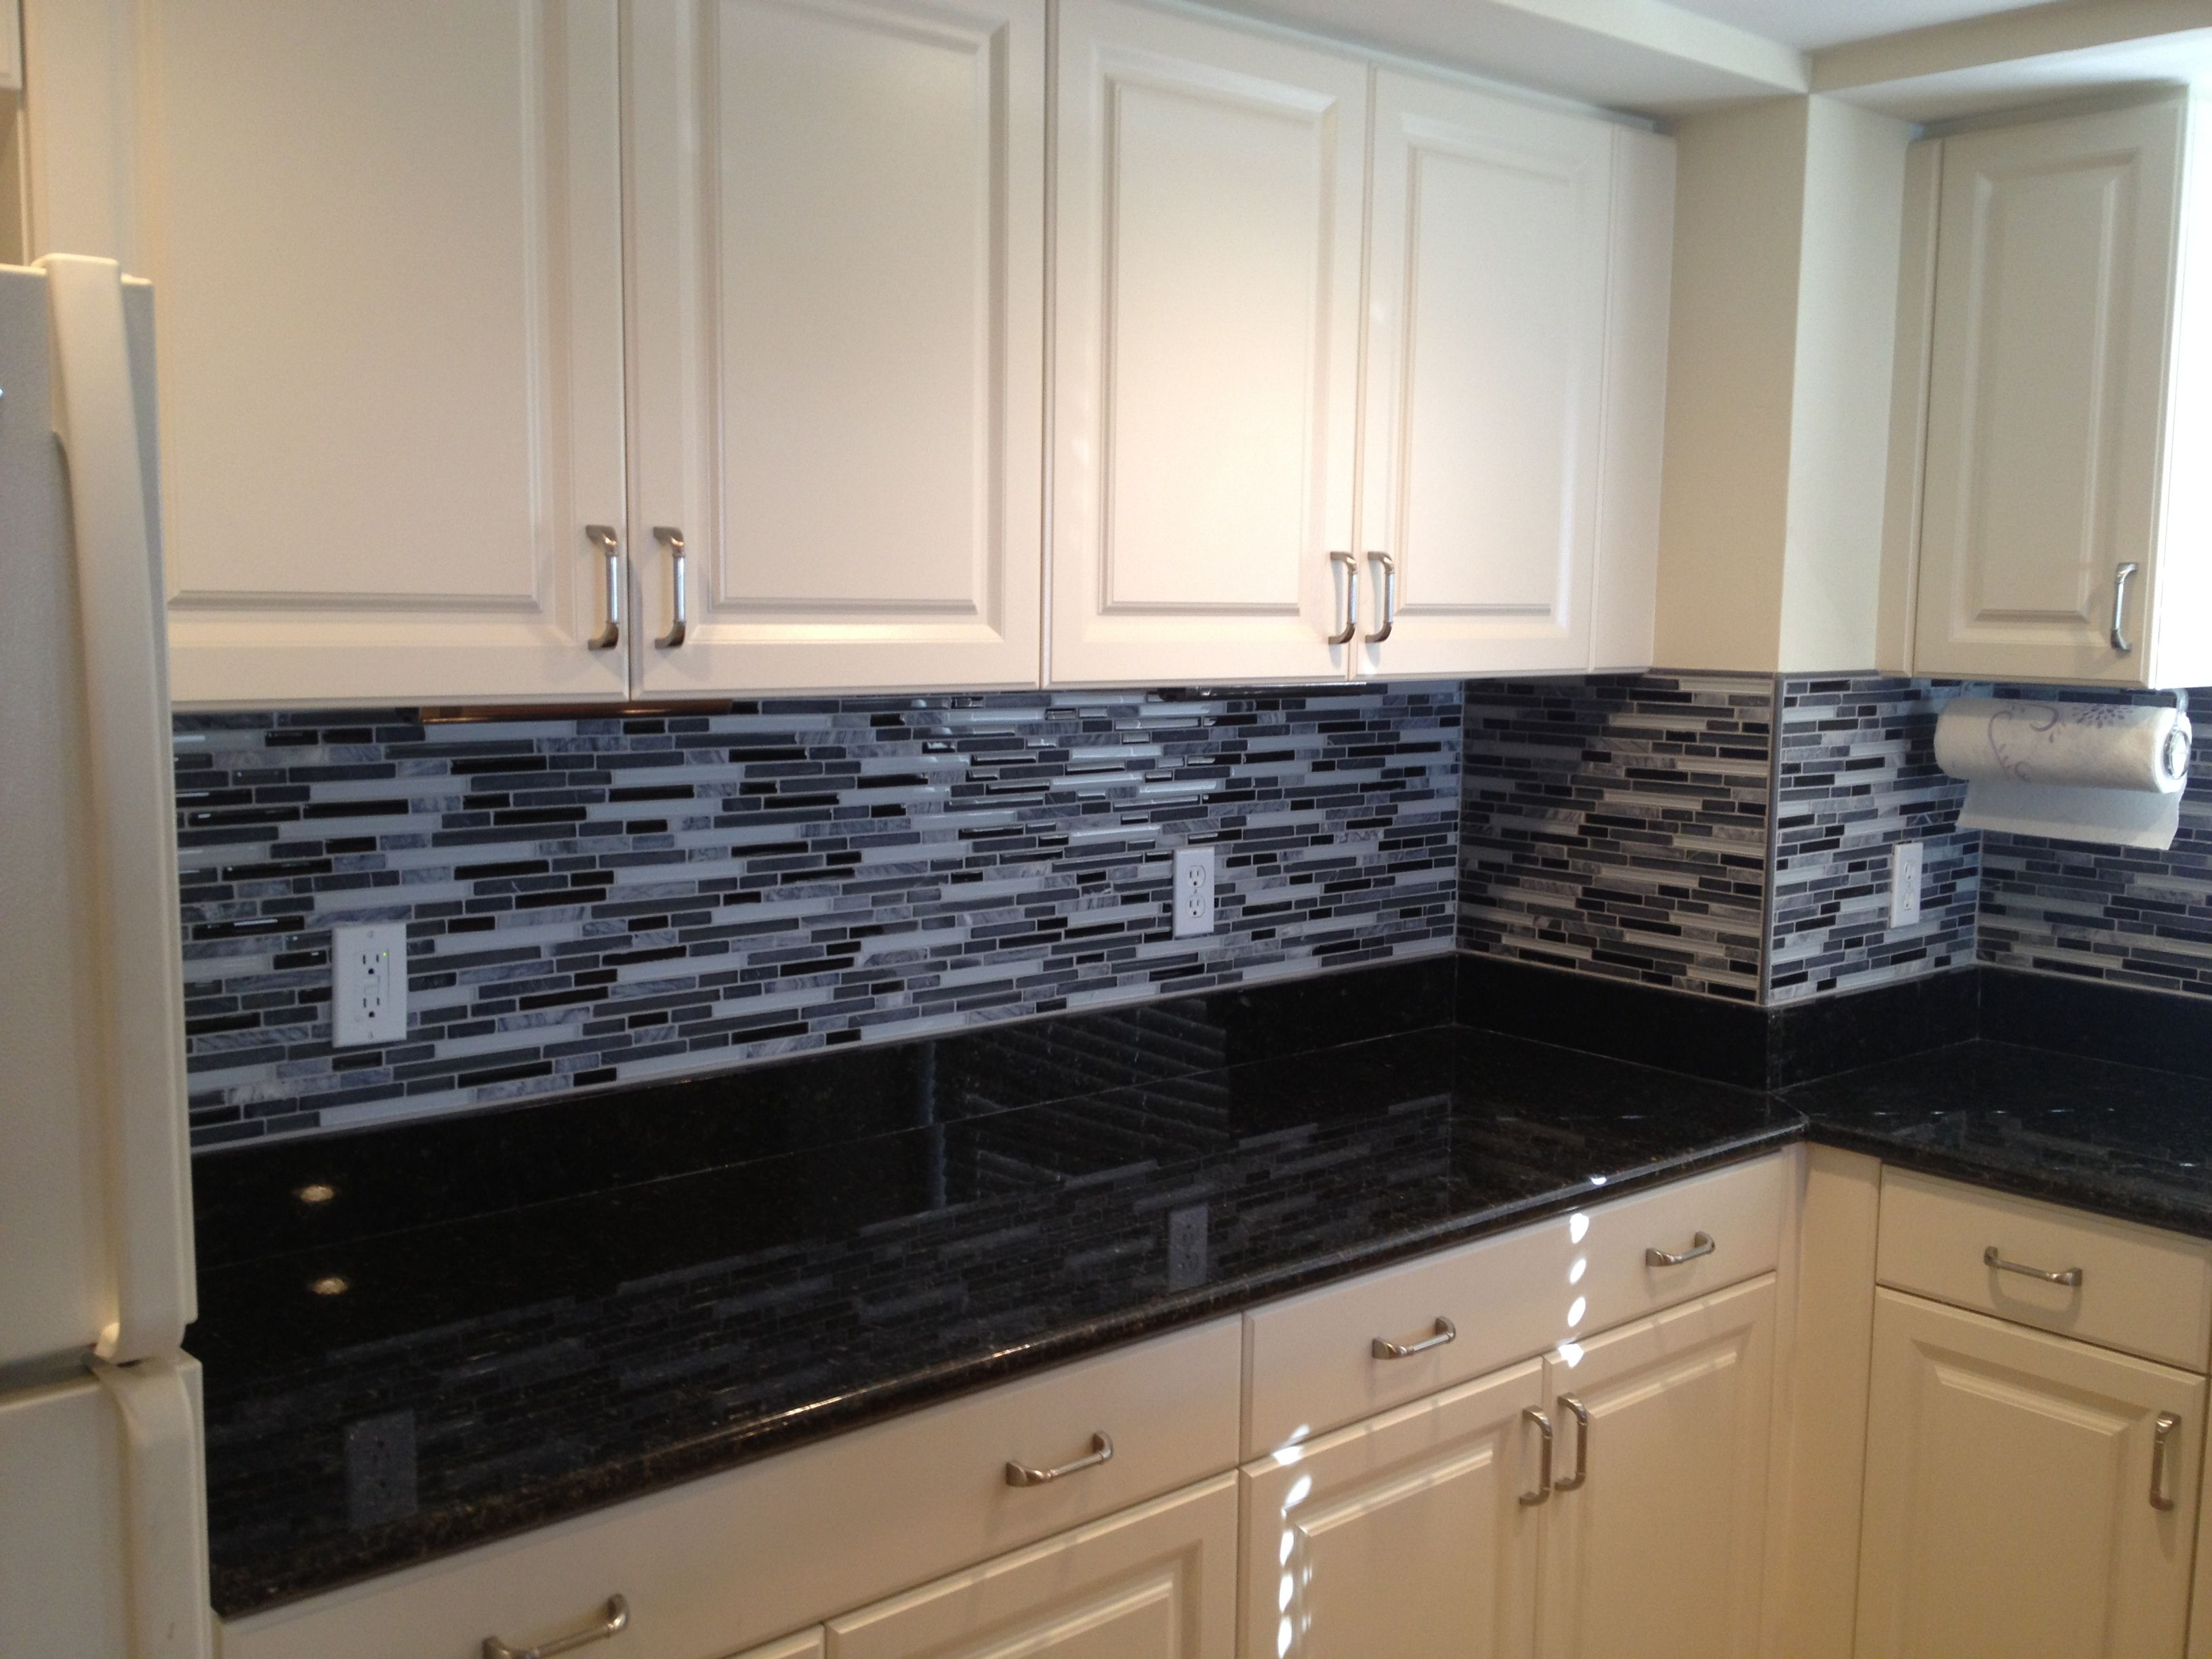 Classic Black And White Kitchen  The Glass And Stone Linear Backsplash  Really Brings It